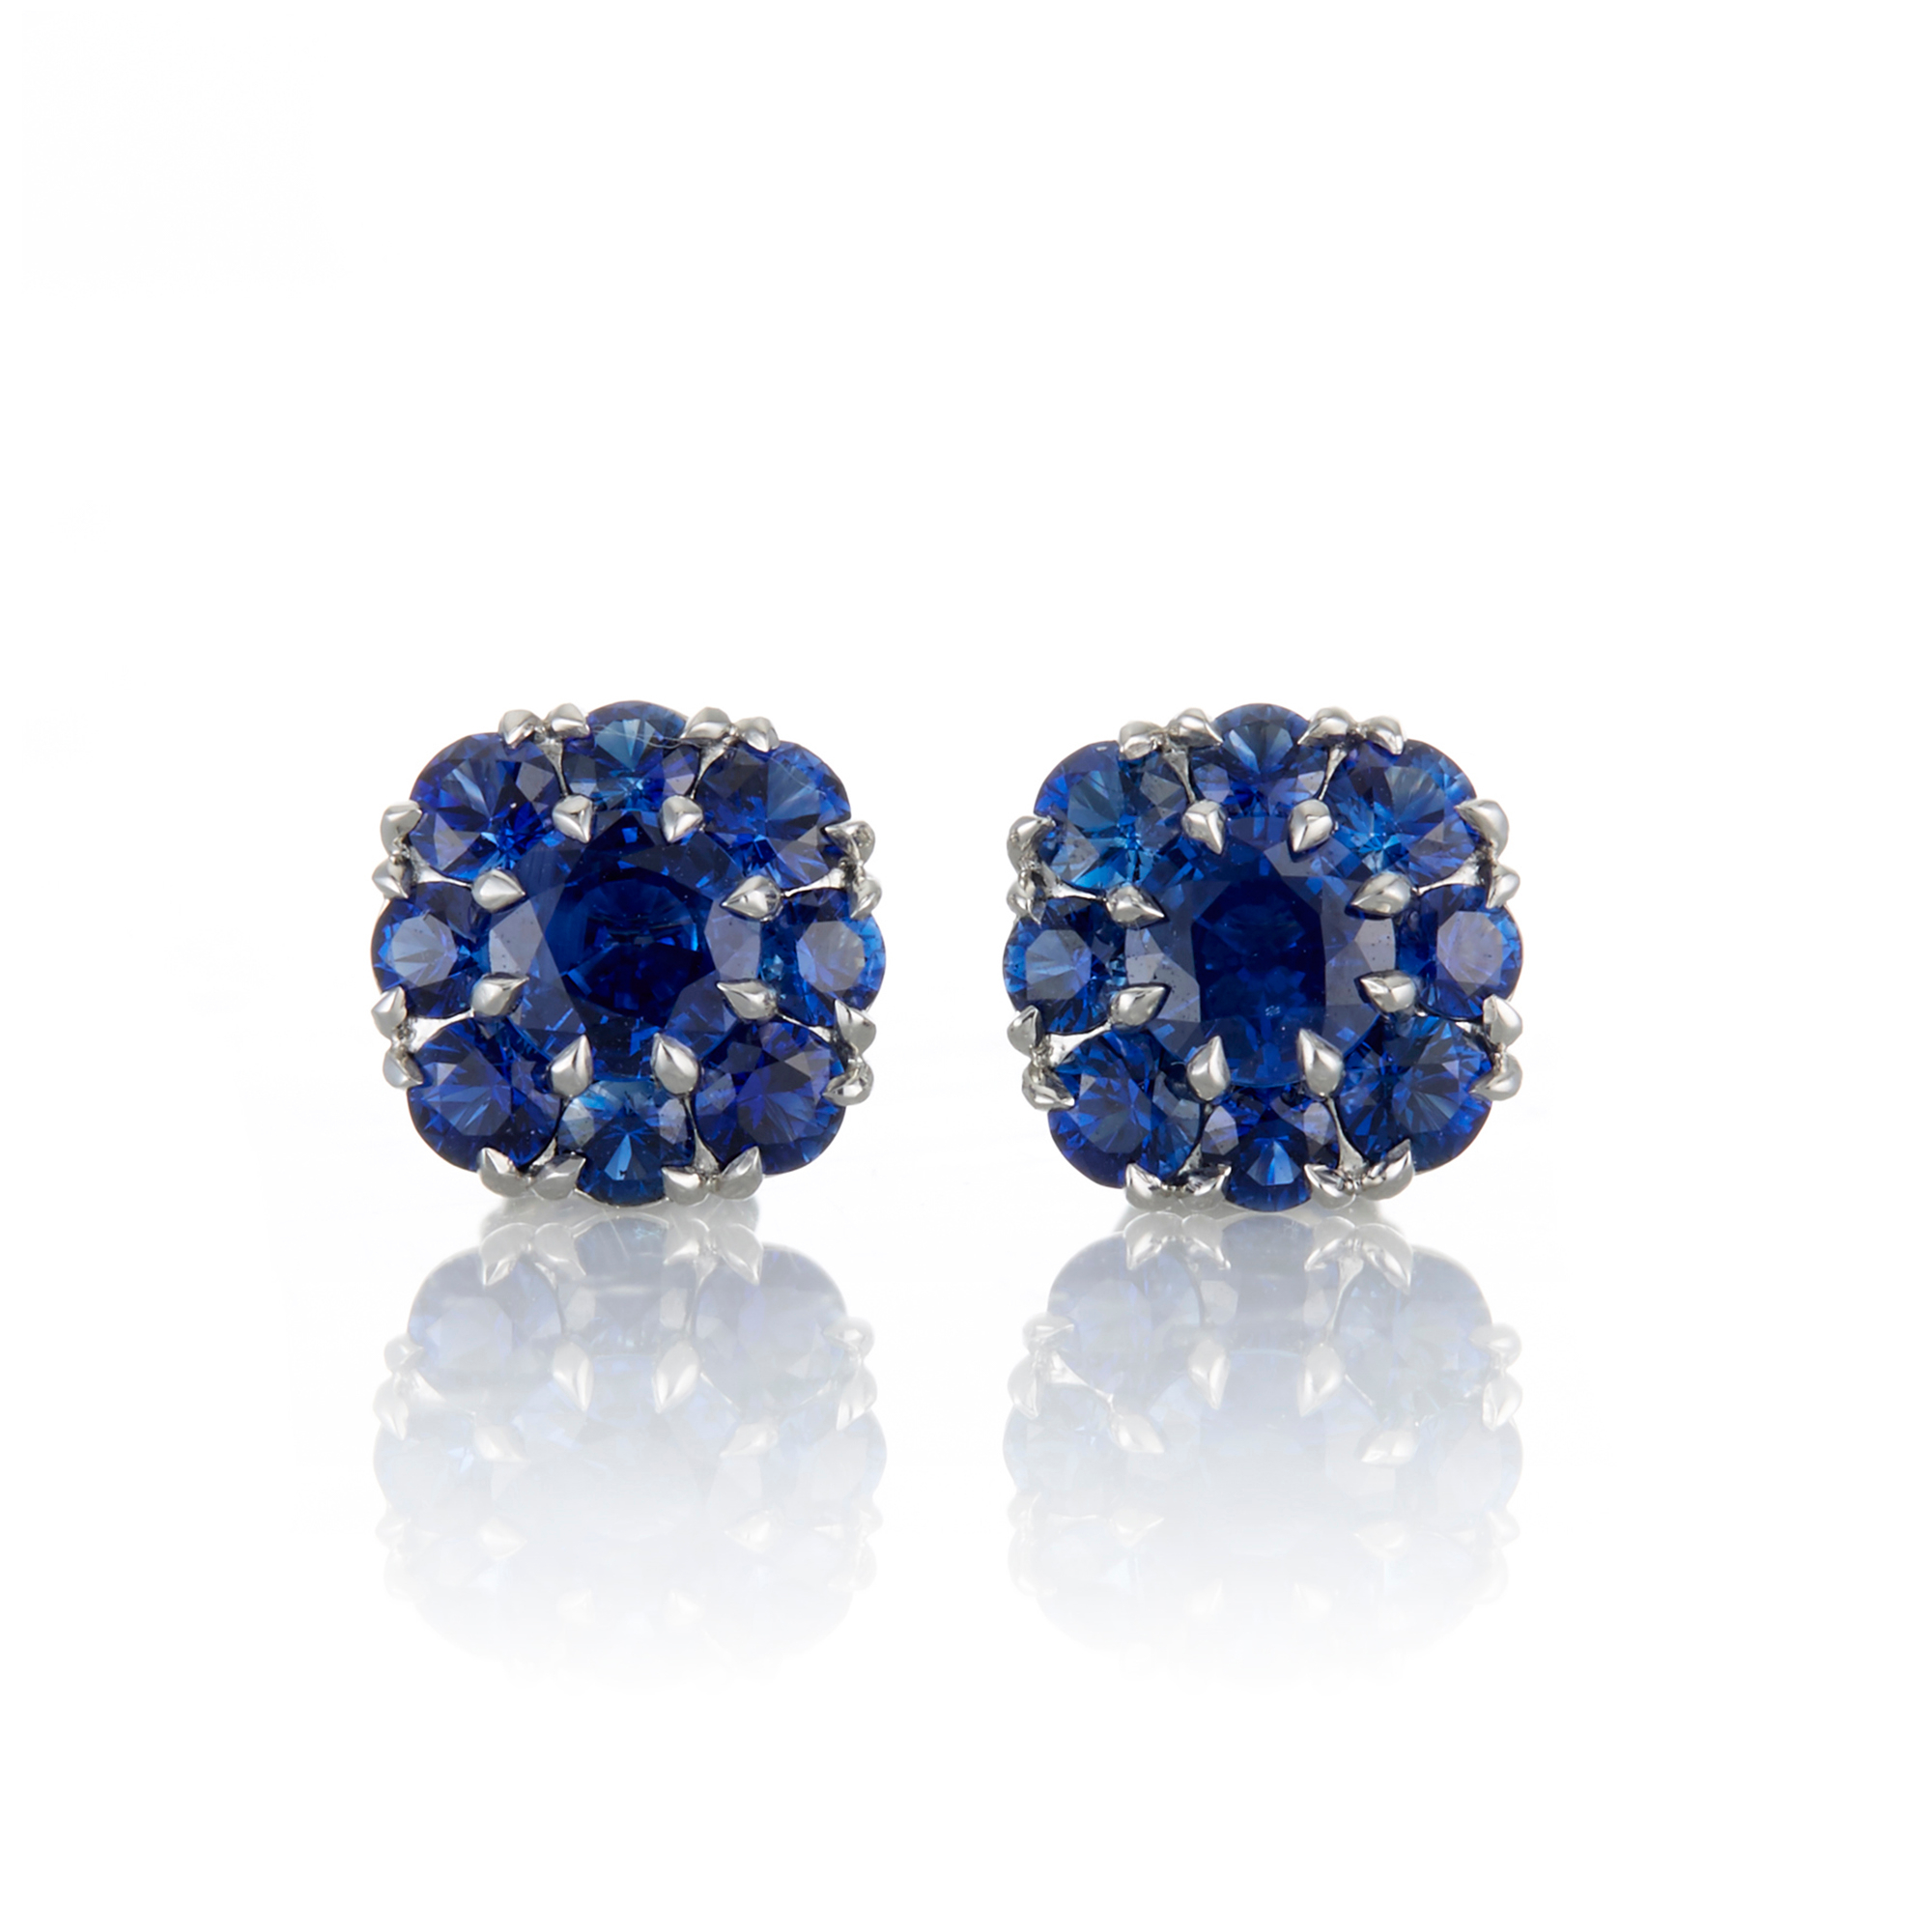 McTeigue & McClelland Sapphire Berry Cluster Platinum Earrings